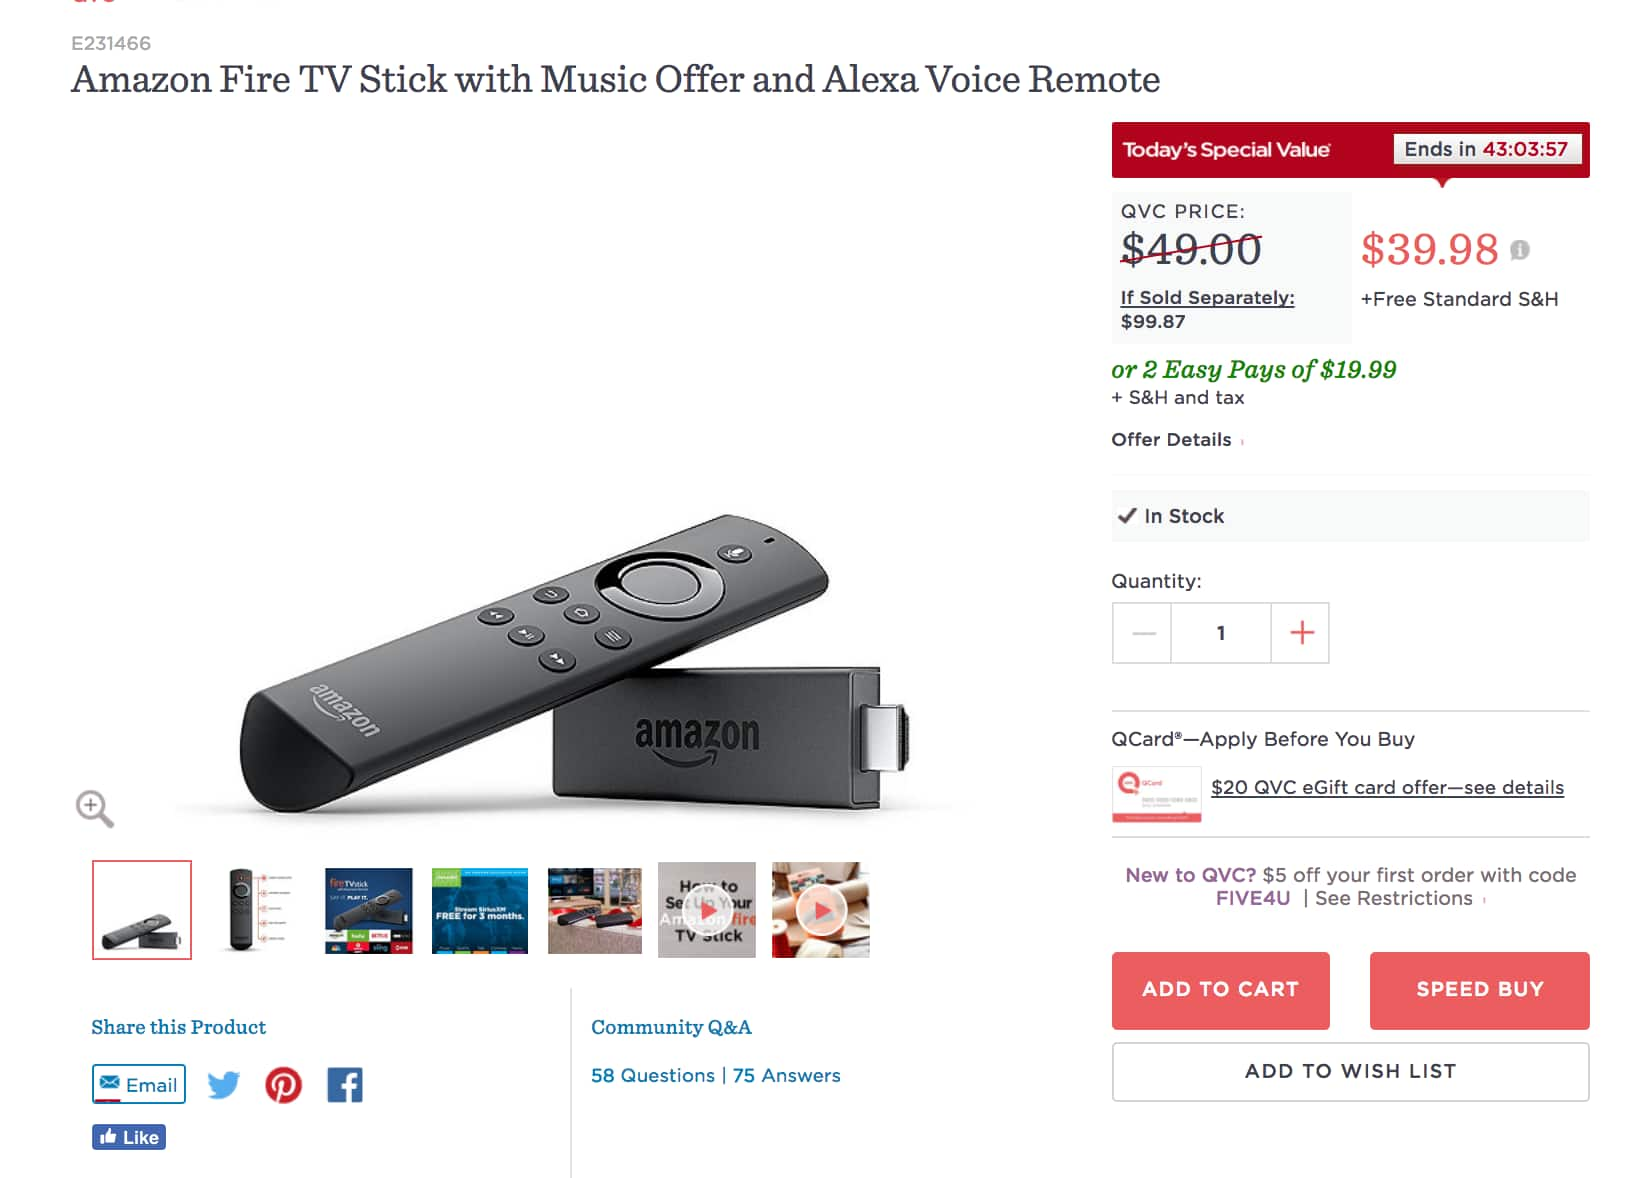 $10 OFF - FREE S&H - Amazon Fire TV Stick with Music Offer and Alexa Voice Remote $39.98